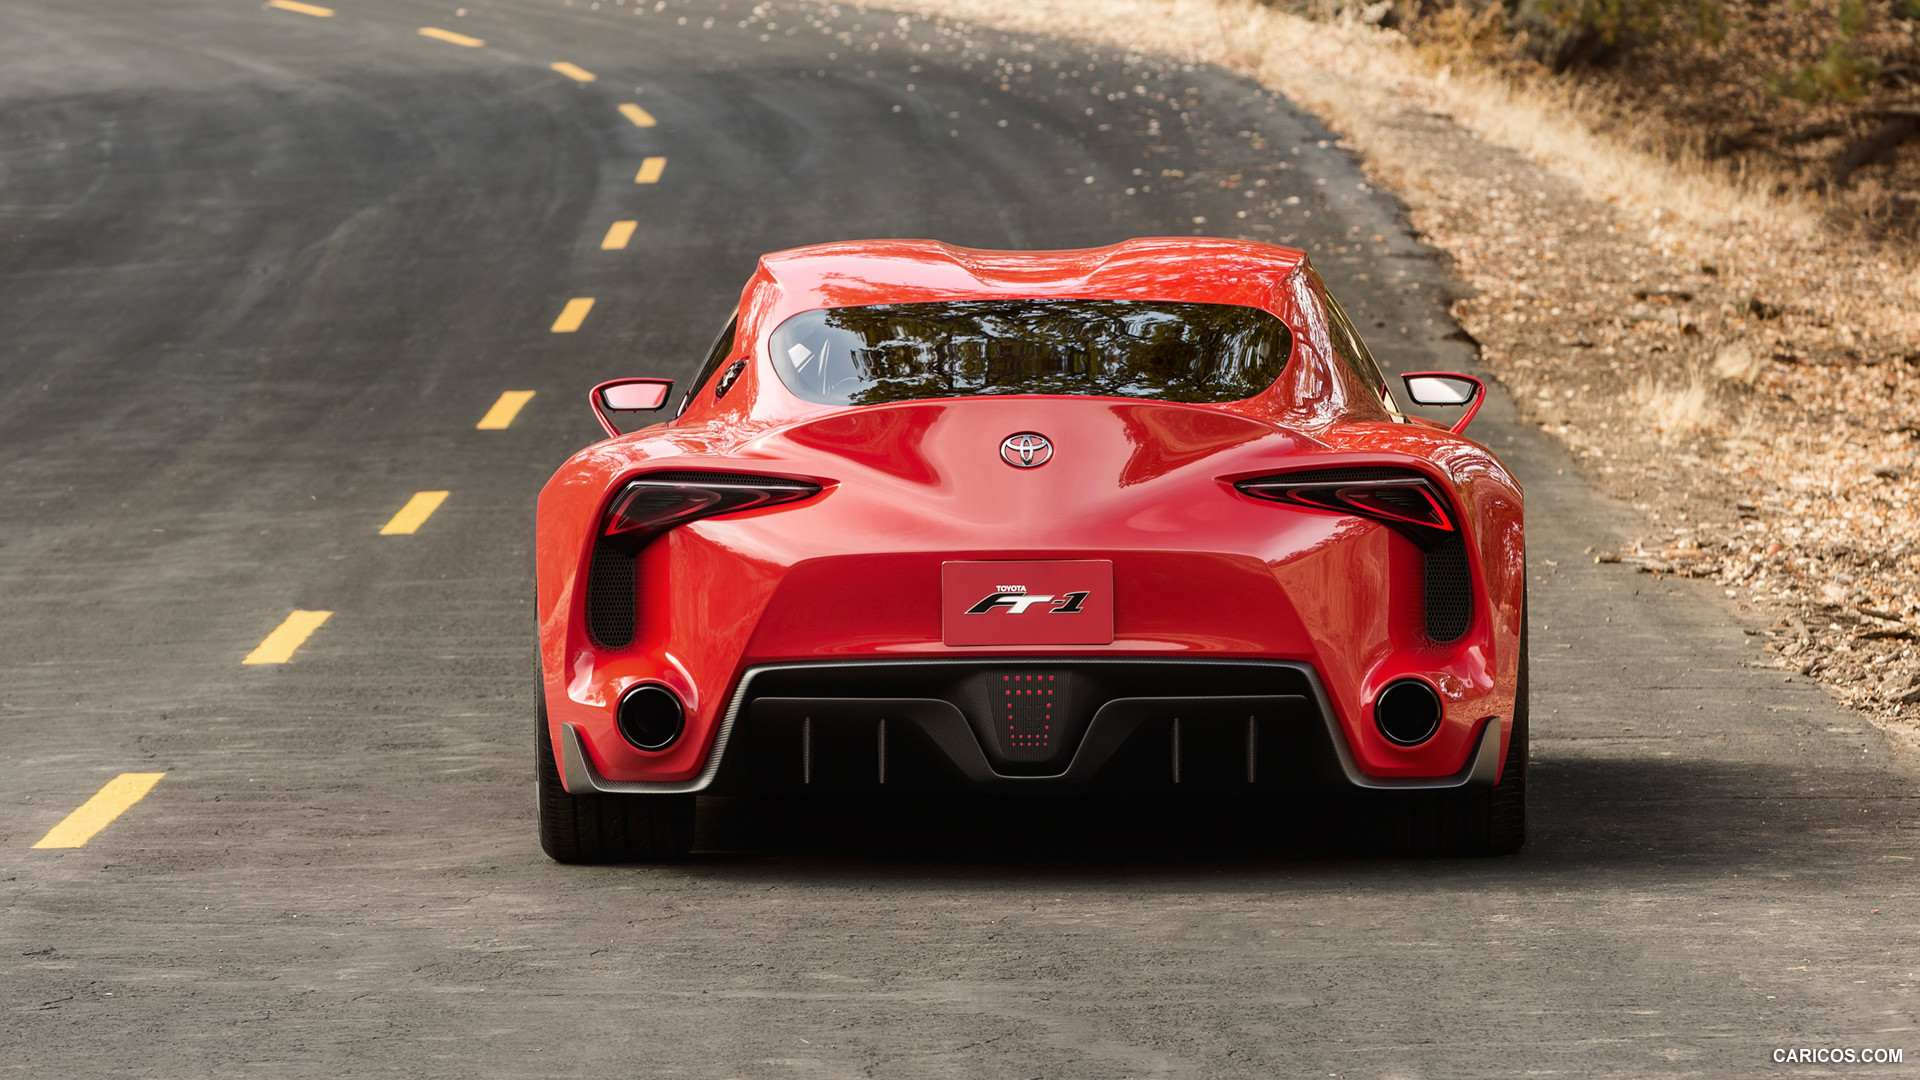 Toyota Ft 1 Concept Hd Wallpaper Full Hd Pictures